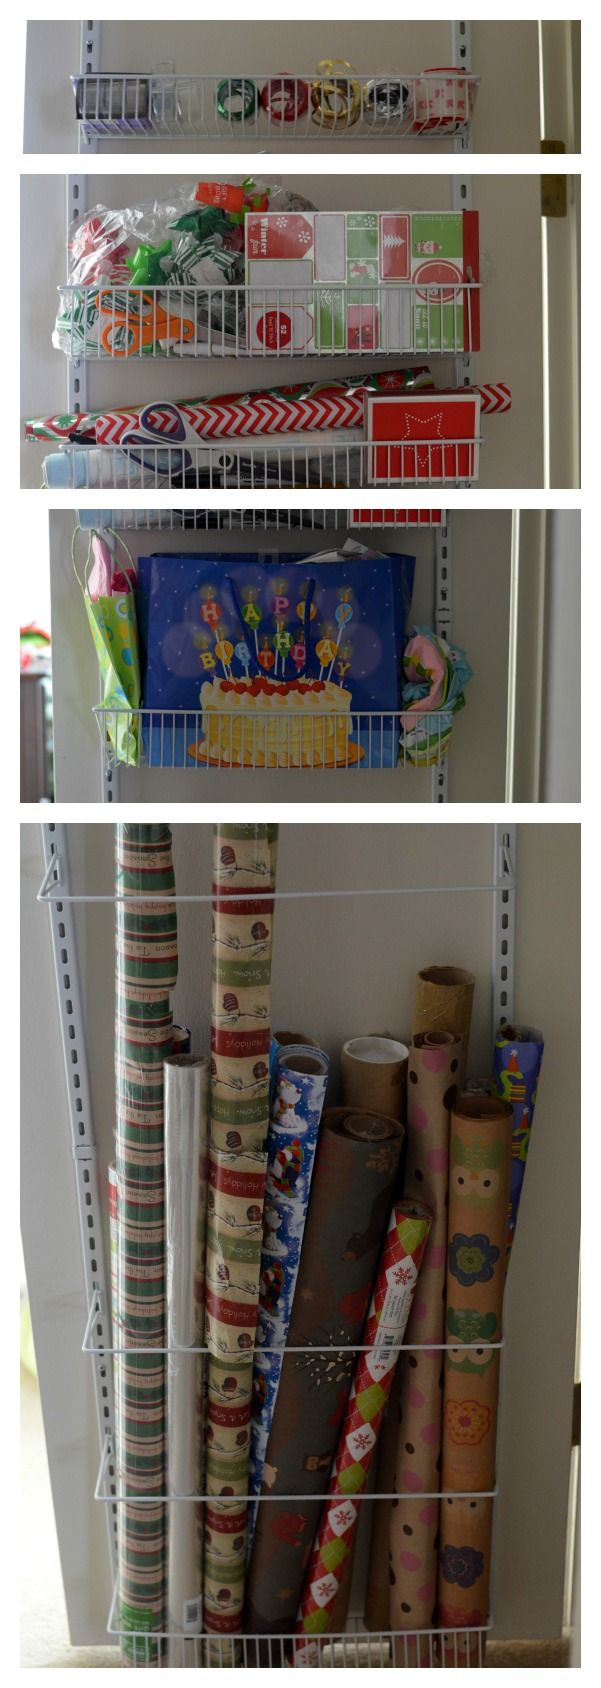 Elegant Over The Door Wrapping Paper Storage Solution   ClosetMaid Adjustable Door  Rack Turned Into A Gift Wrap Storage Station. Can Also Be Used For Pantry  Items ...